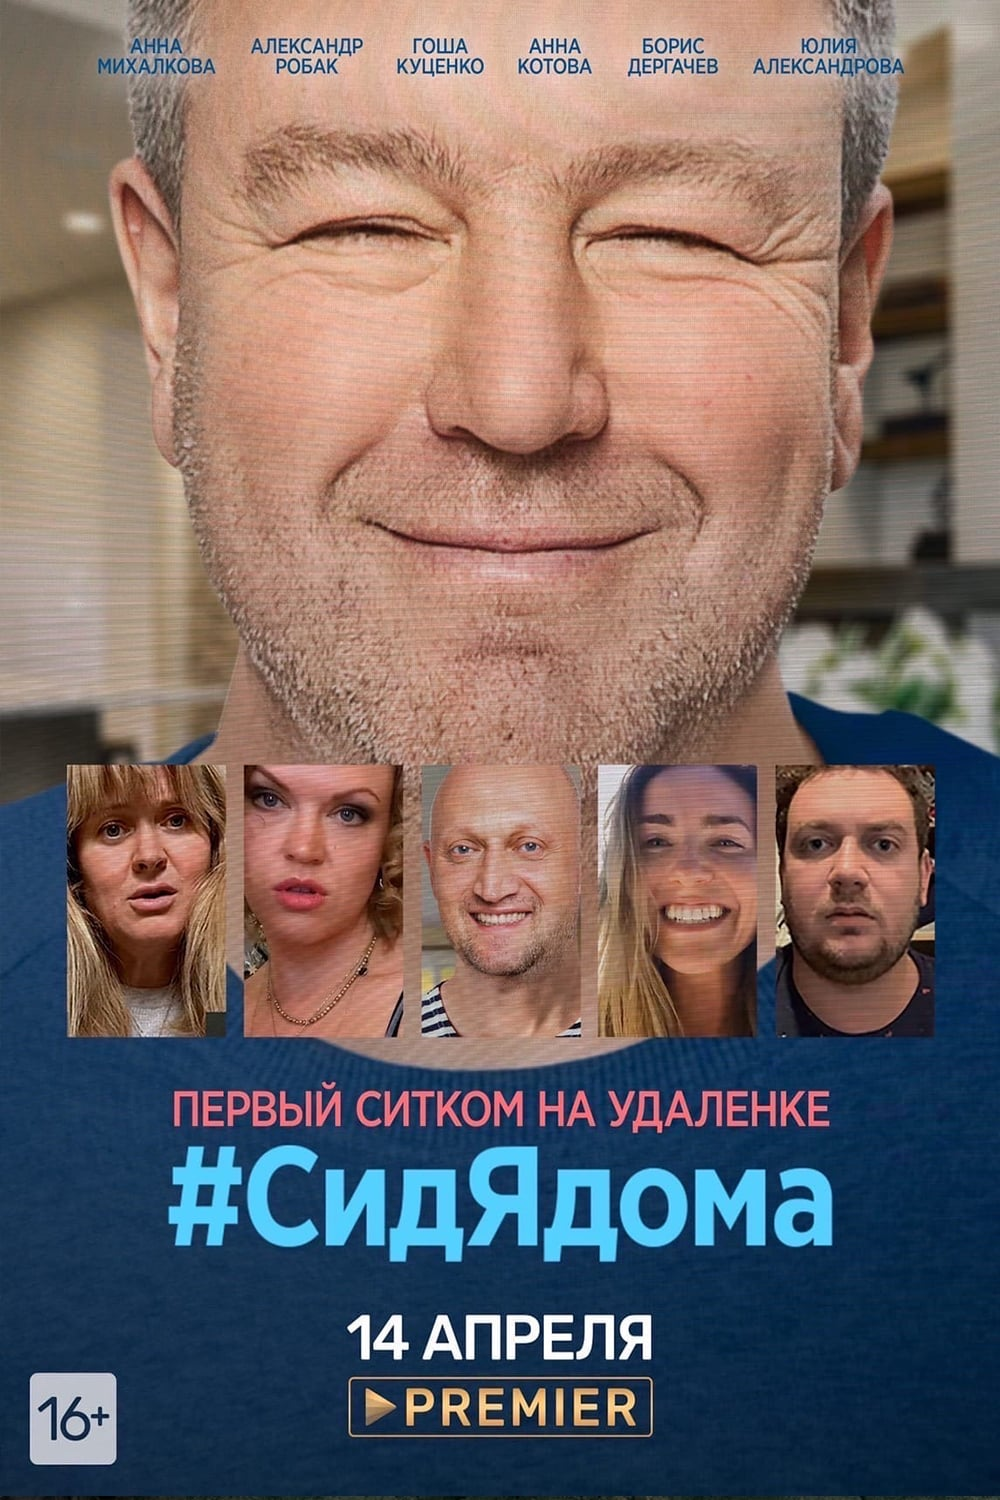 #СидЯдома TV Shows About Computer